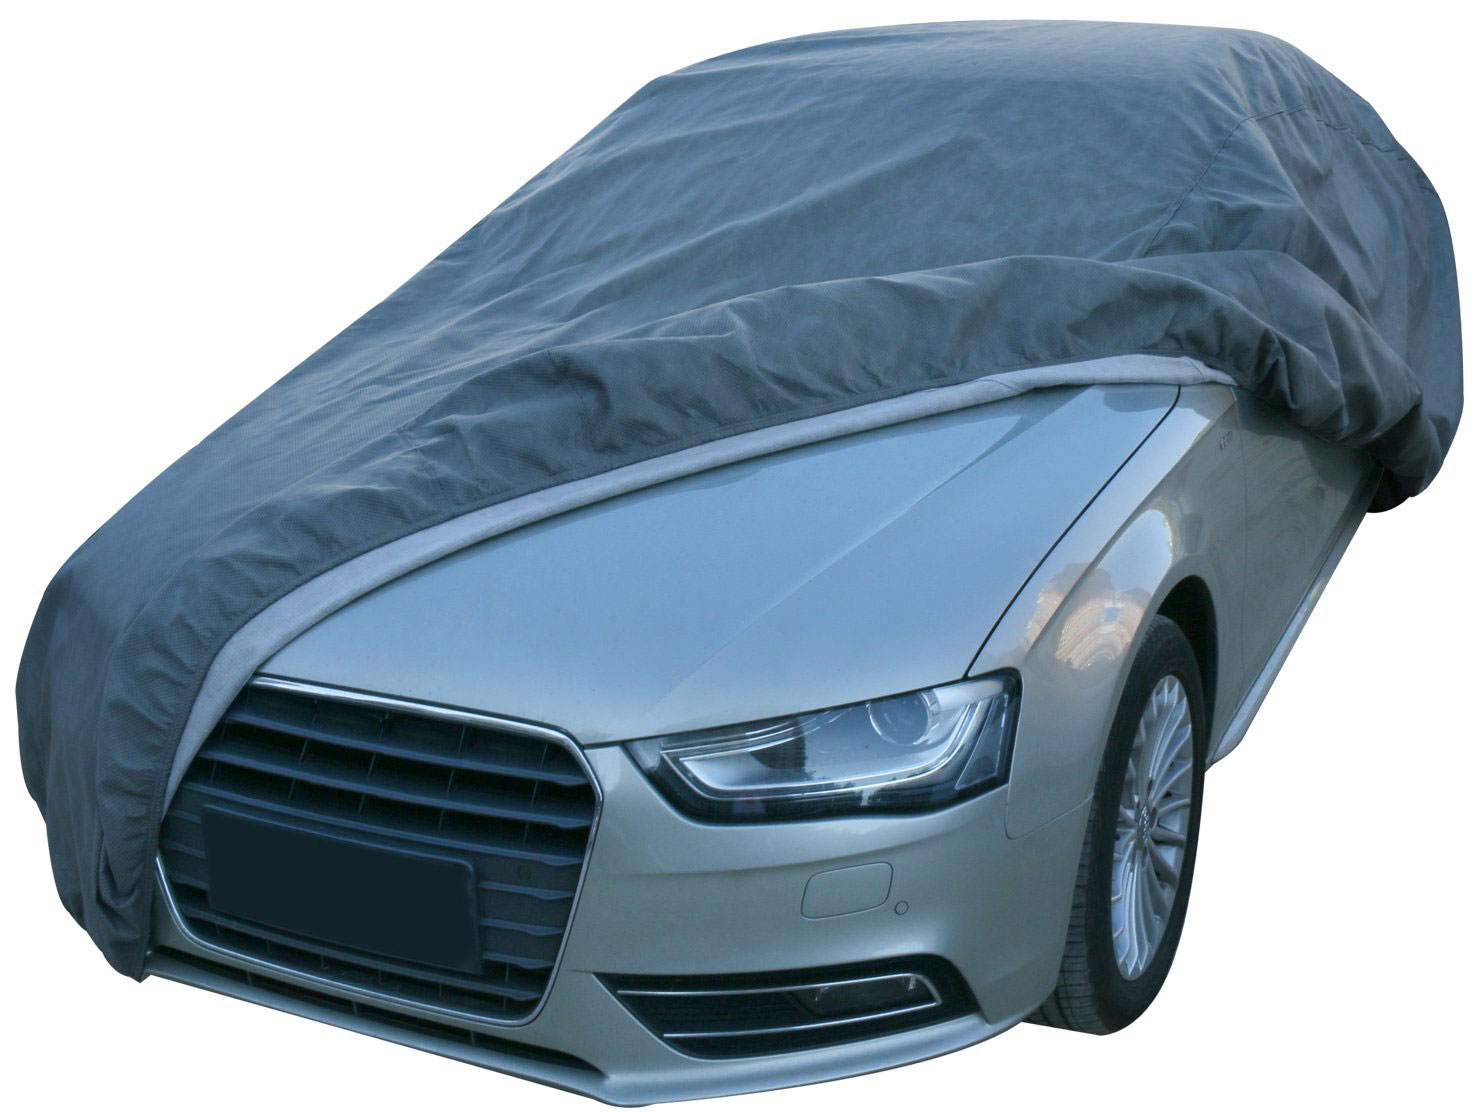 BMW 6 SERIES COUPE PREMIUM FULLY WATERPROOF CAR COVER COTTON LINED LUXURY HEAVY